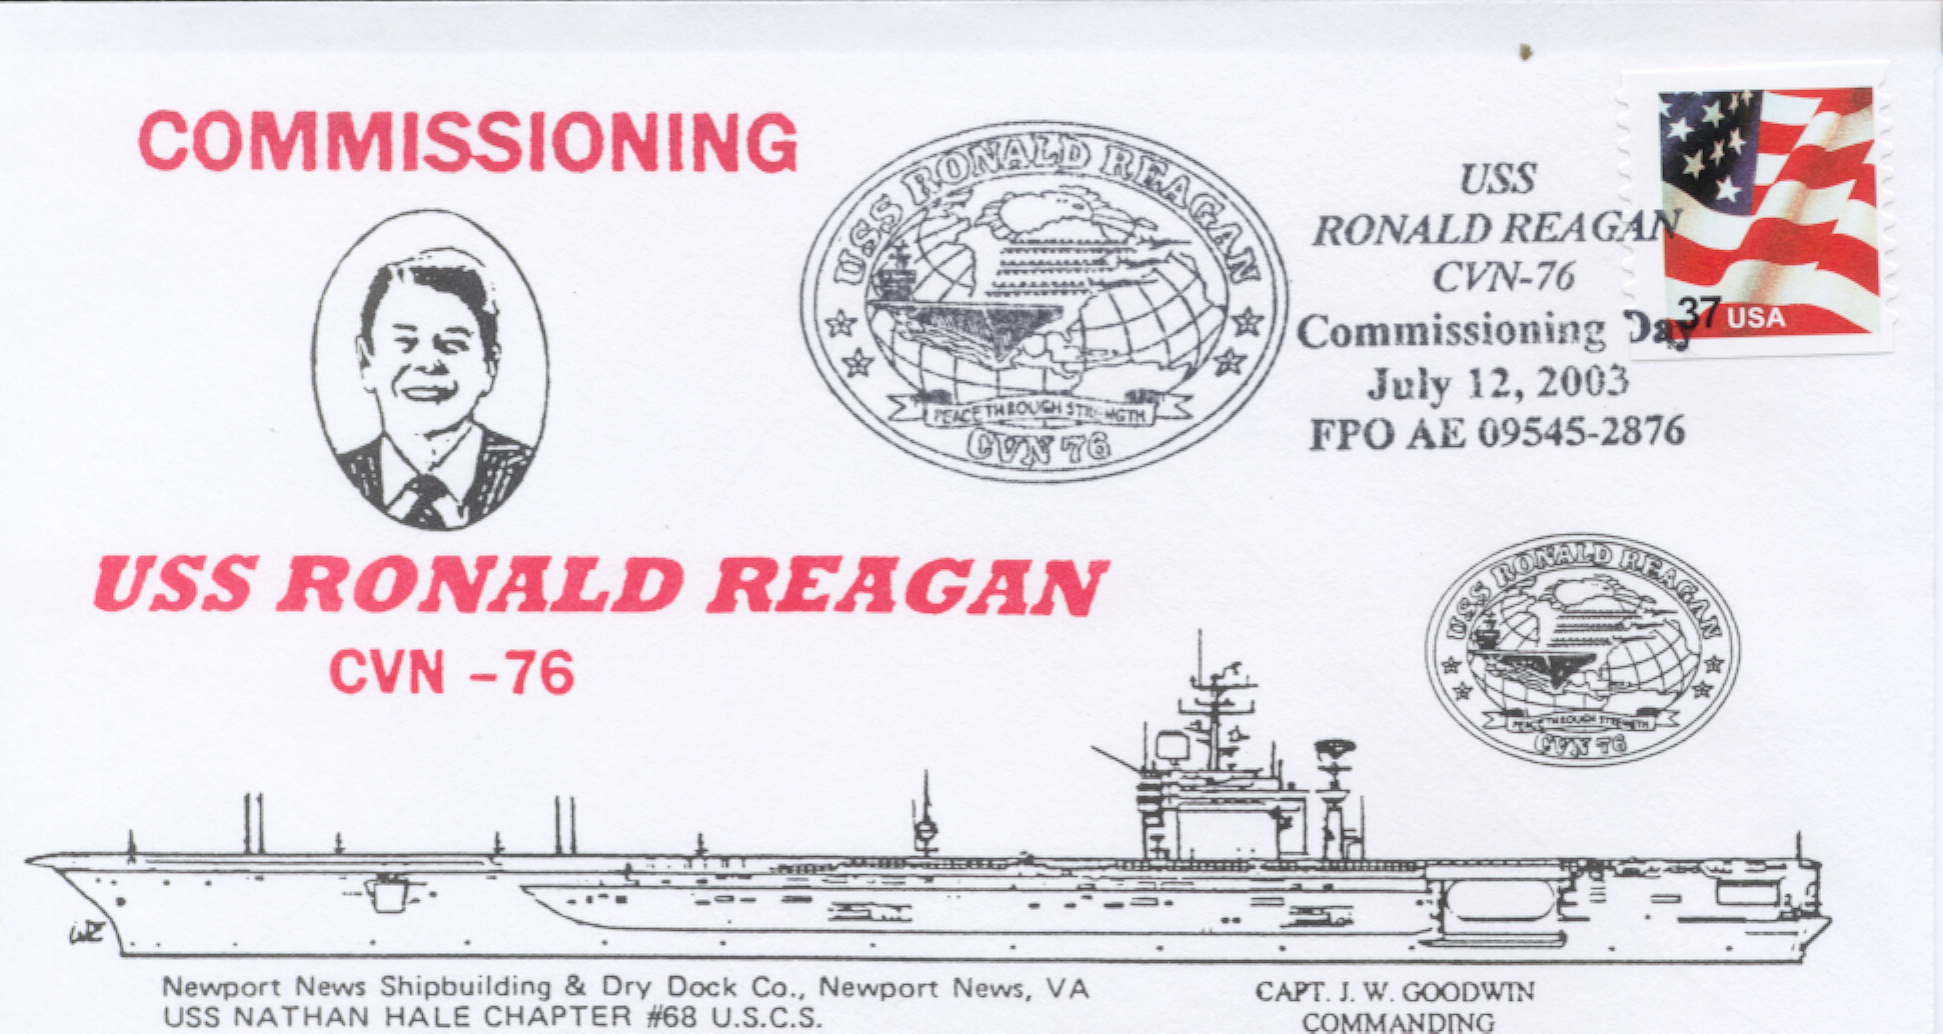 Reagan CVN-76 Commissioned #4